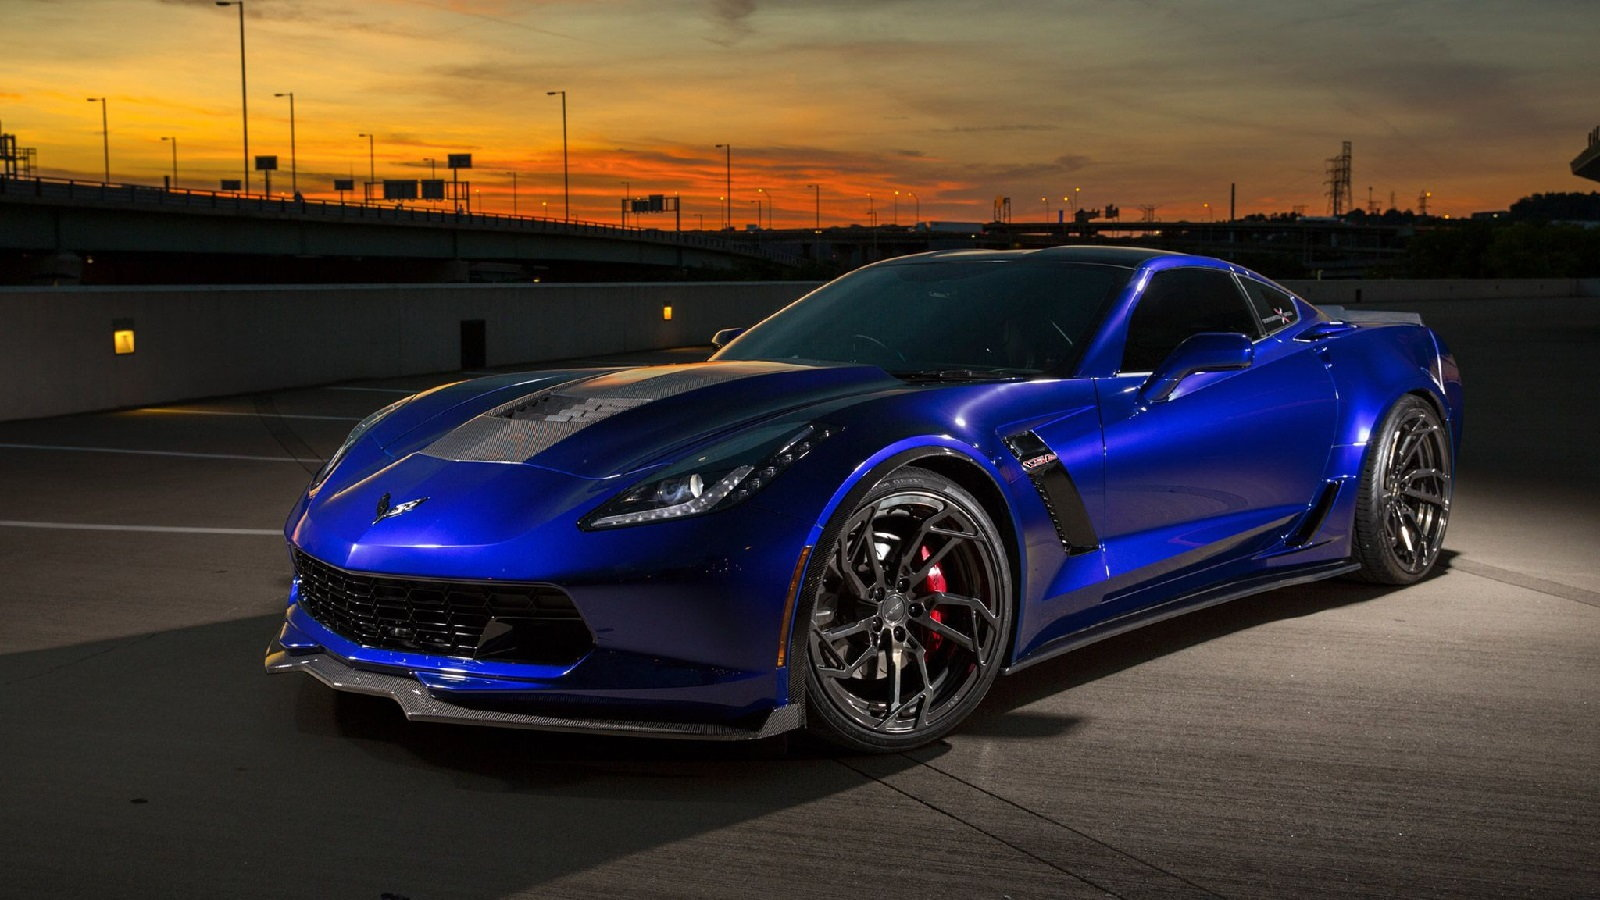 Weapon X's C7 Makes 1,000 Horsepower From a Hopped Up LT1